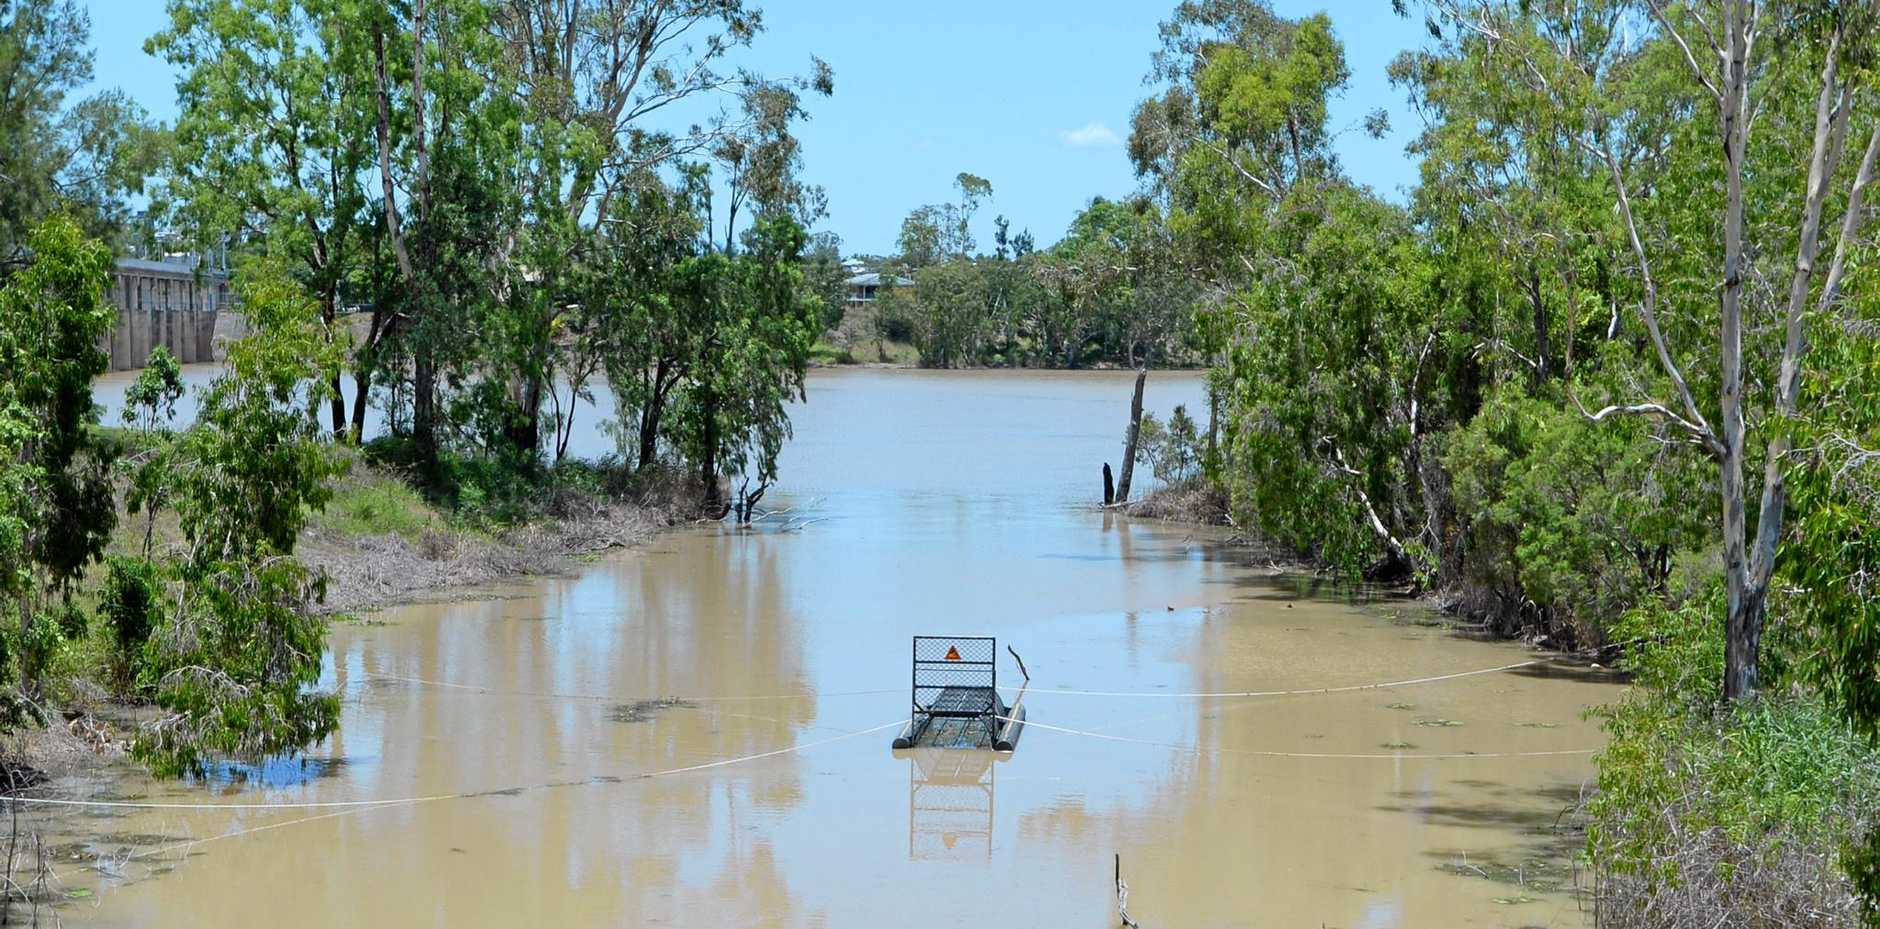 Multiple crocodile sightings near Splitters Creek has resulted in a croc trap being placed in the waterway near the outflow to the Fitzroy River.